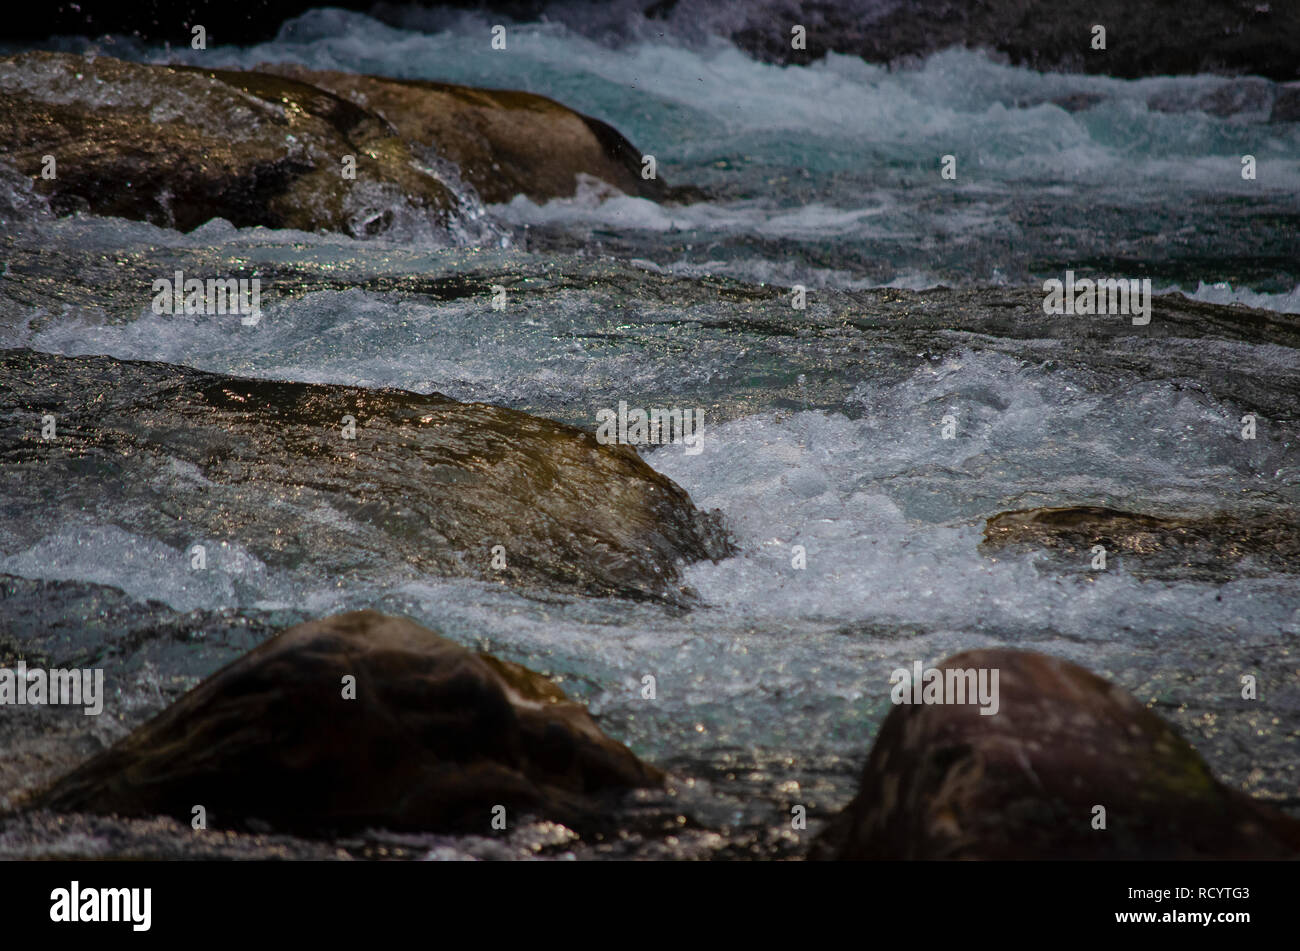 Parvati river viewed from Chalal, a small village in Himachal Pradesh, India. - Stock Image